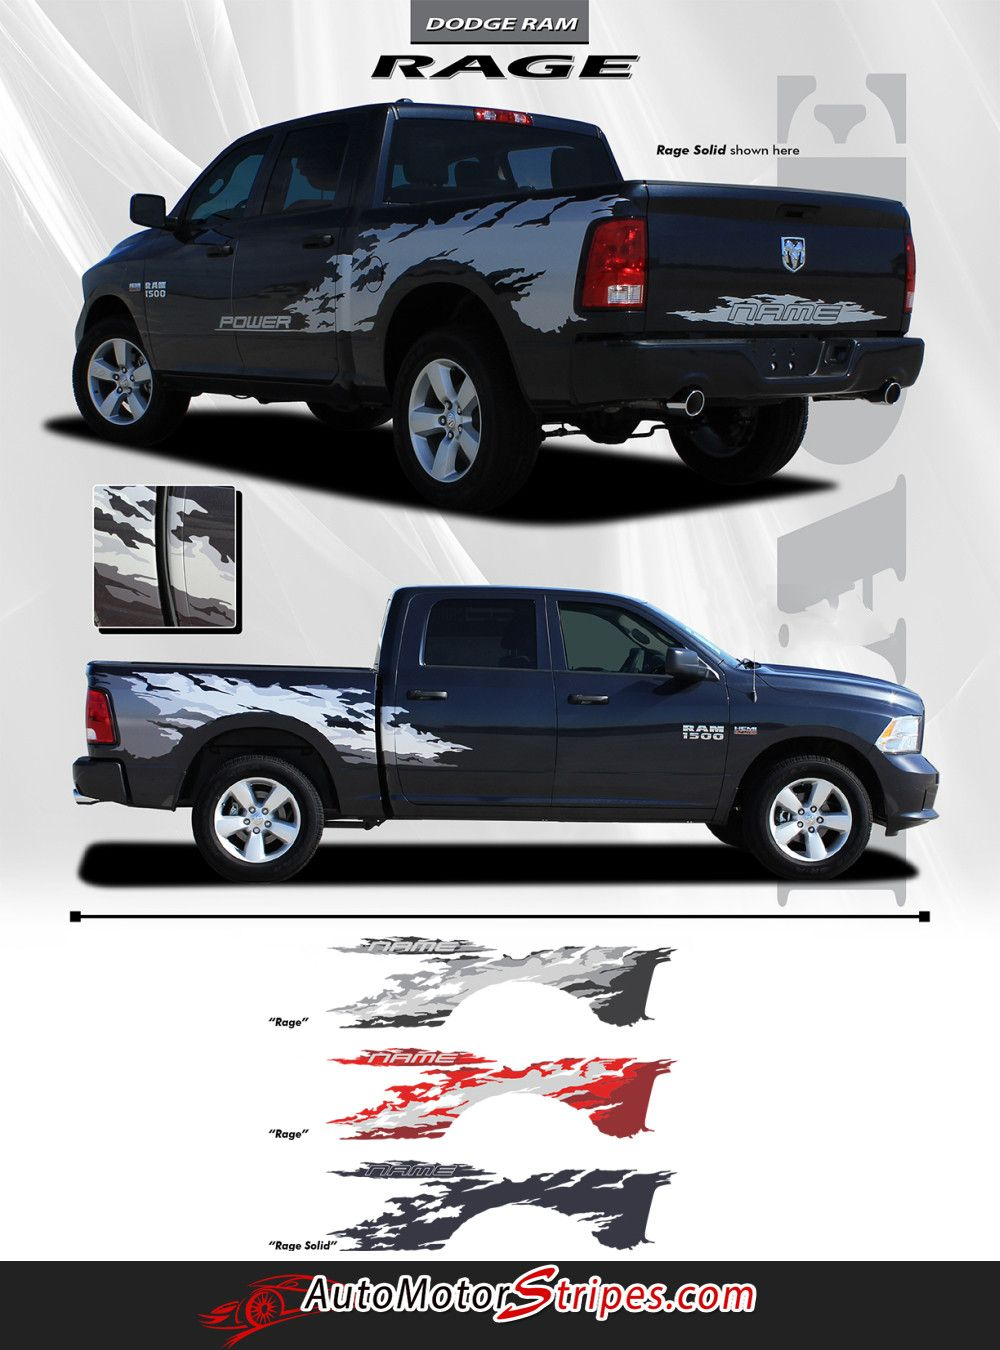 Dodge Ram Rage Multi Color Digital Print Or Solid Color - Truck bed decals custombody graphicsdodge ram